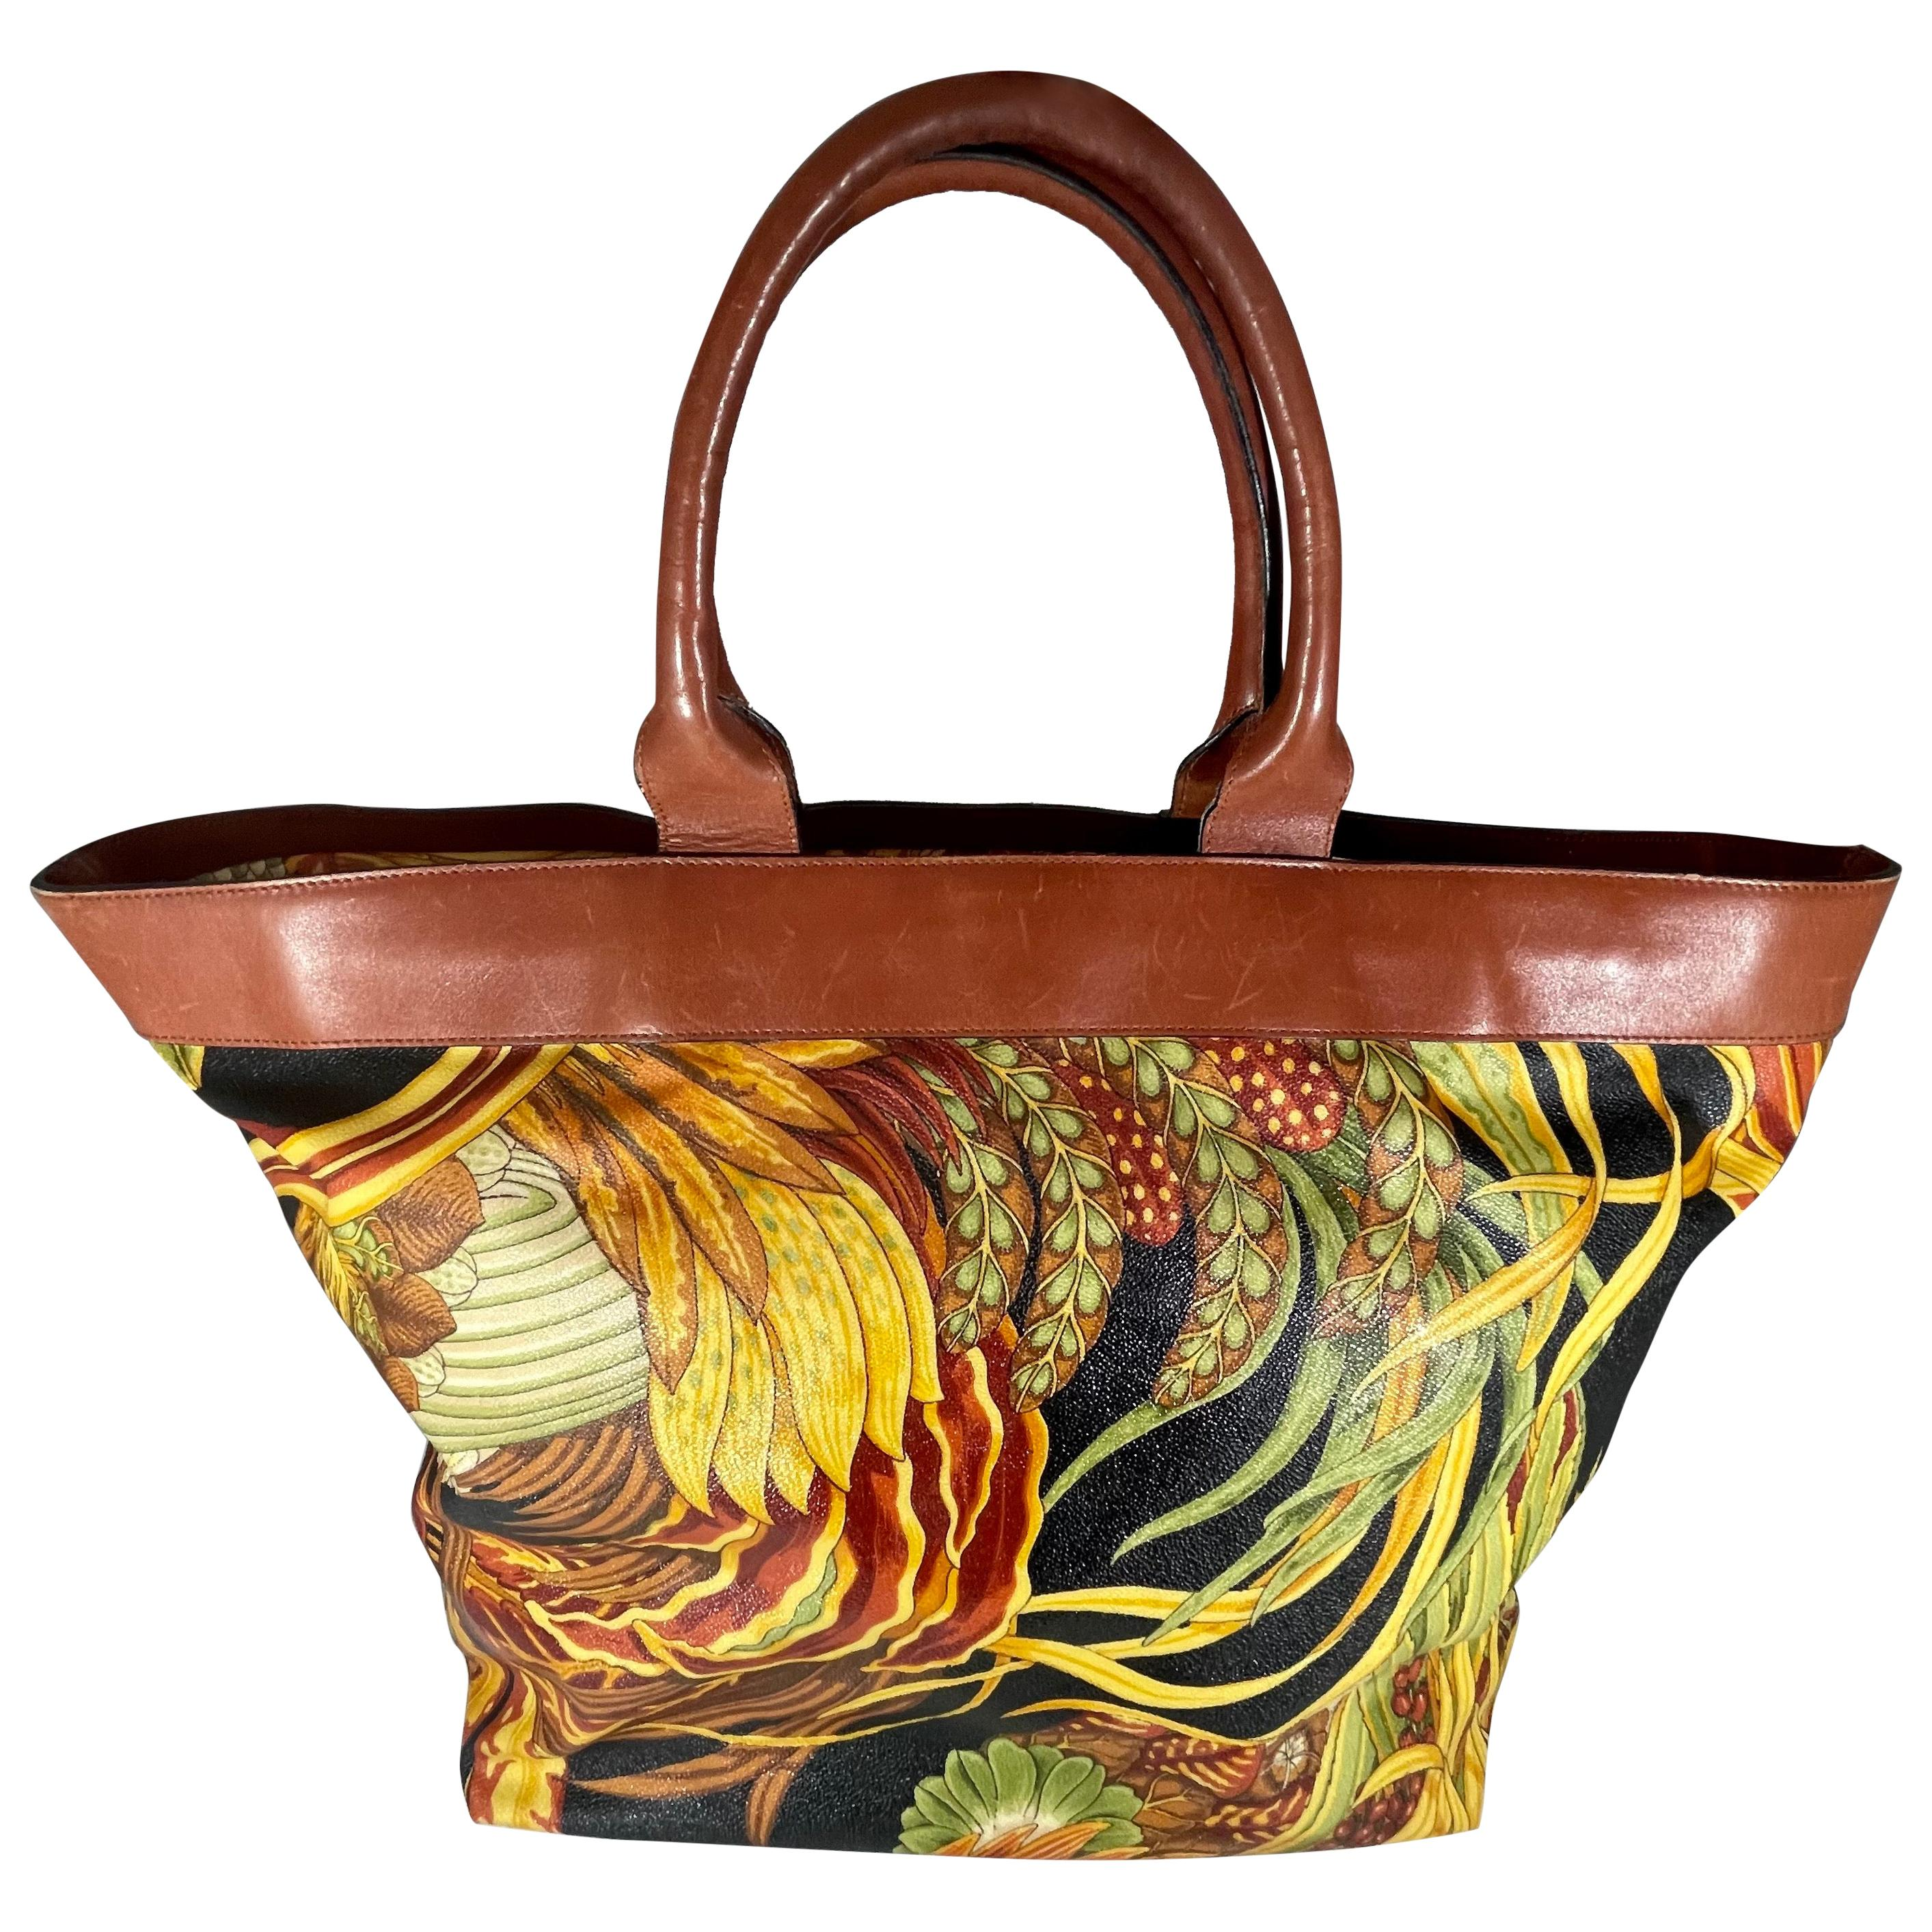 Ferragamo Travel print Tote bag Leather/Nylon Multicolor Large + matching pouch